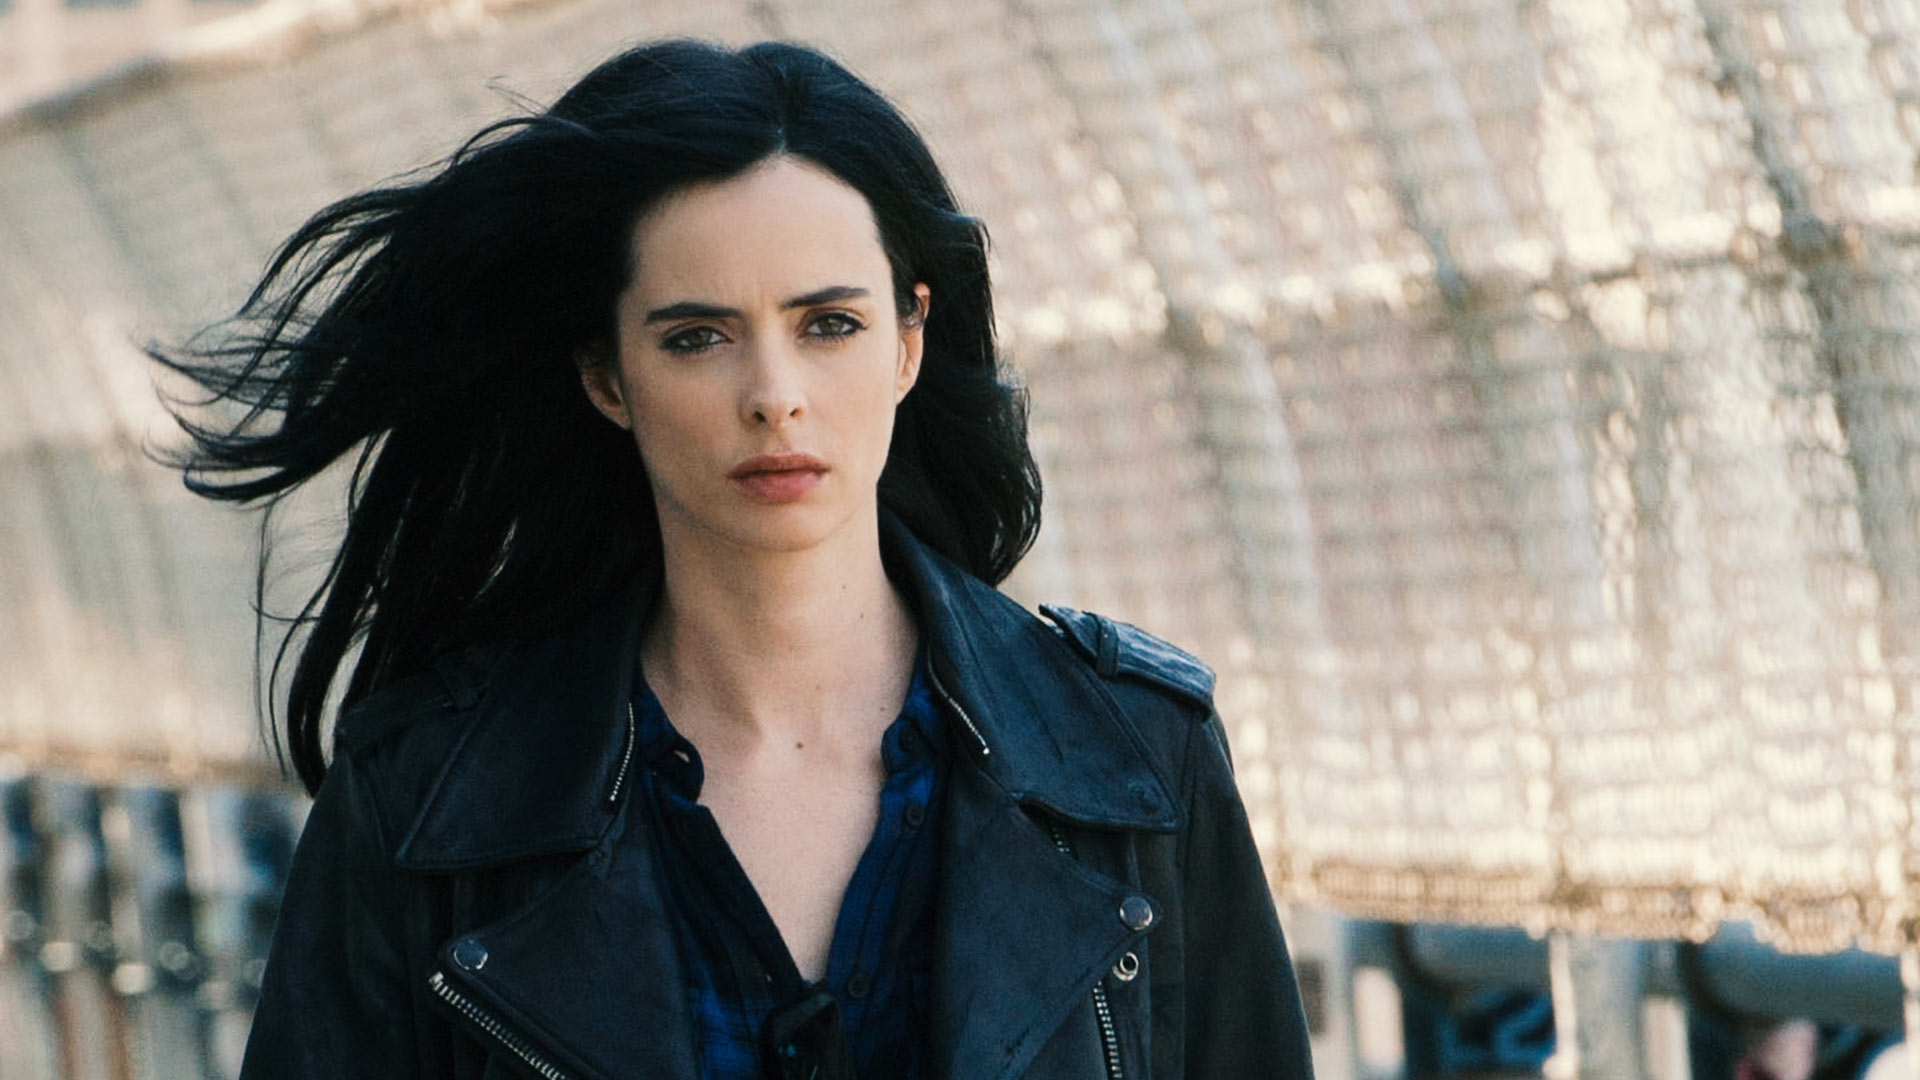 marvel character jessica jones